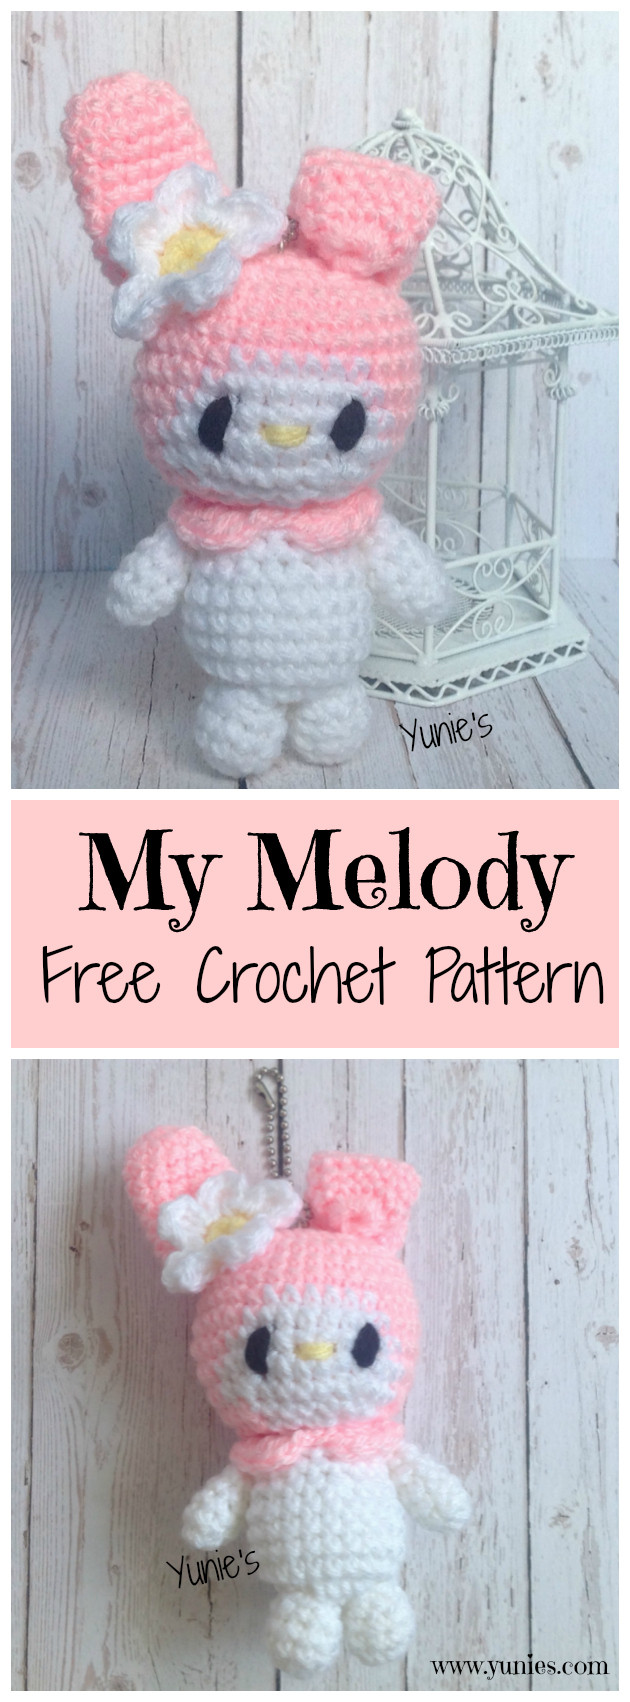 My Melody Fee Crochet Pattern